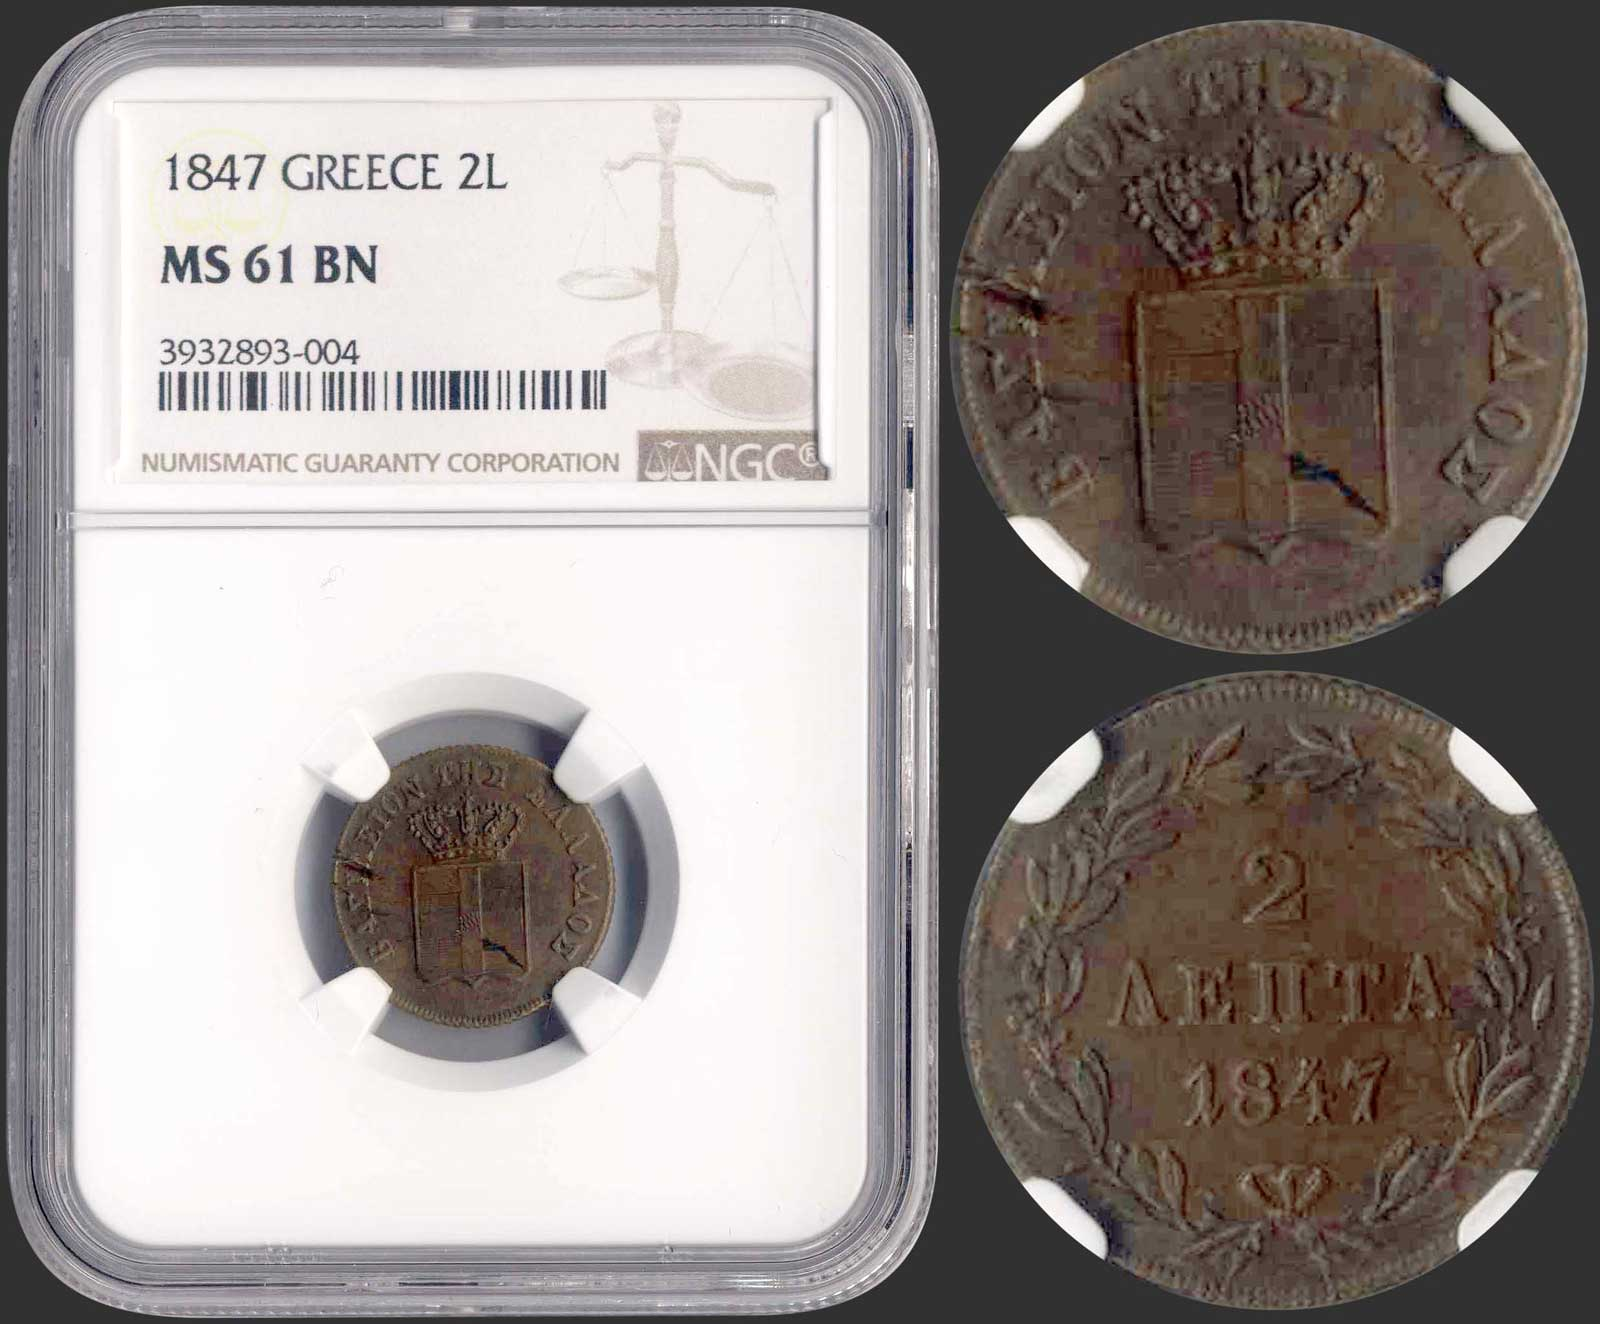 Lot 9066 - GREECE-  COINS & TOKENS king otto -  A. Karamitsos Public & LIVE Bid Auction 610 Coins, Medals & Banknotes